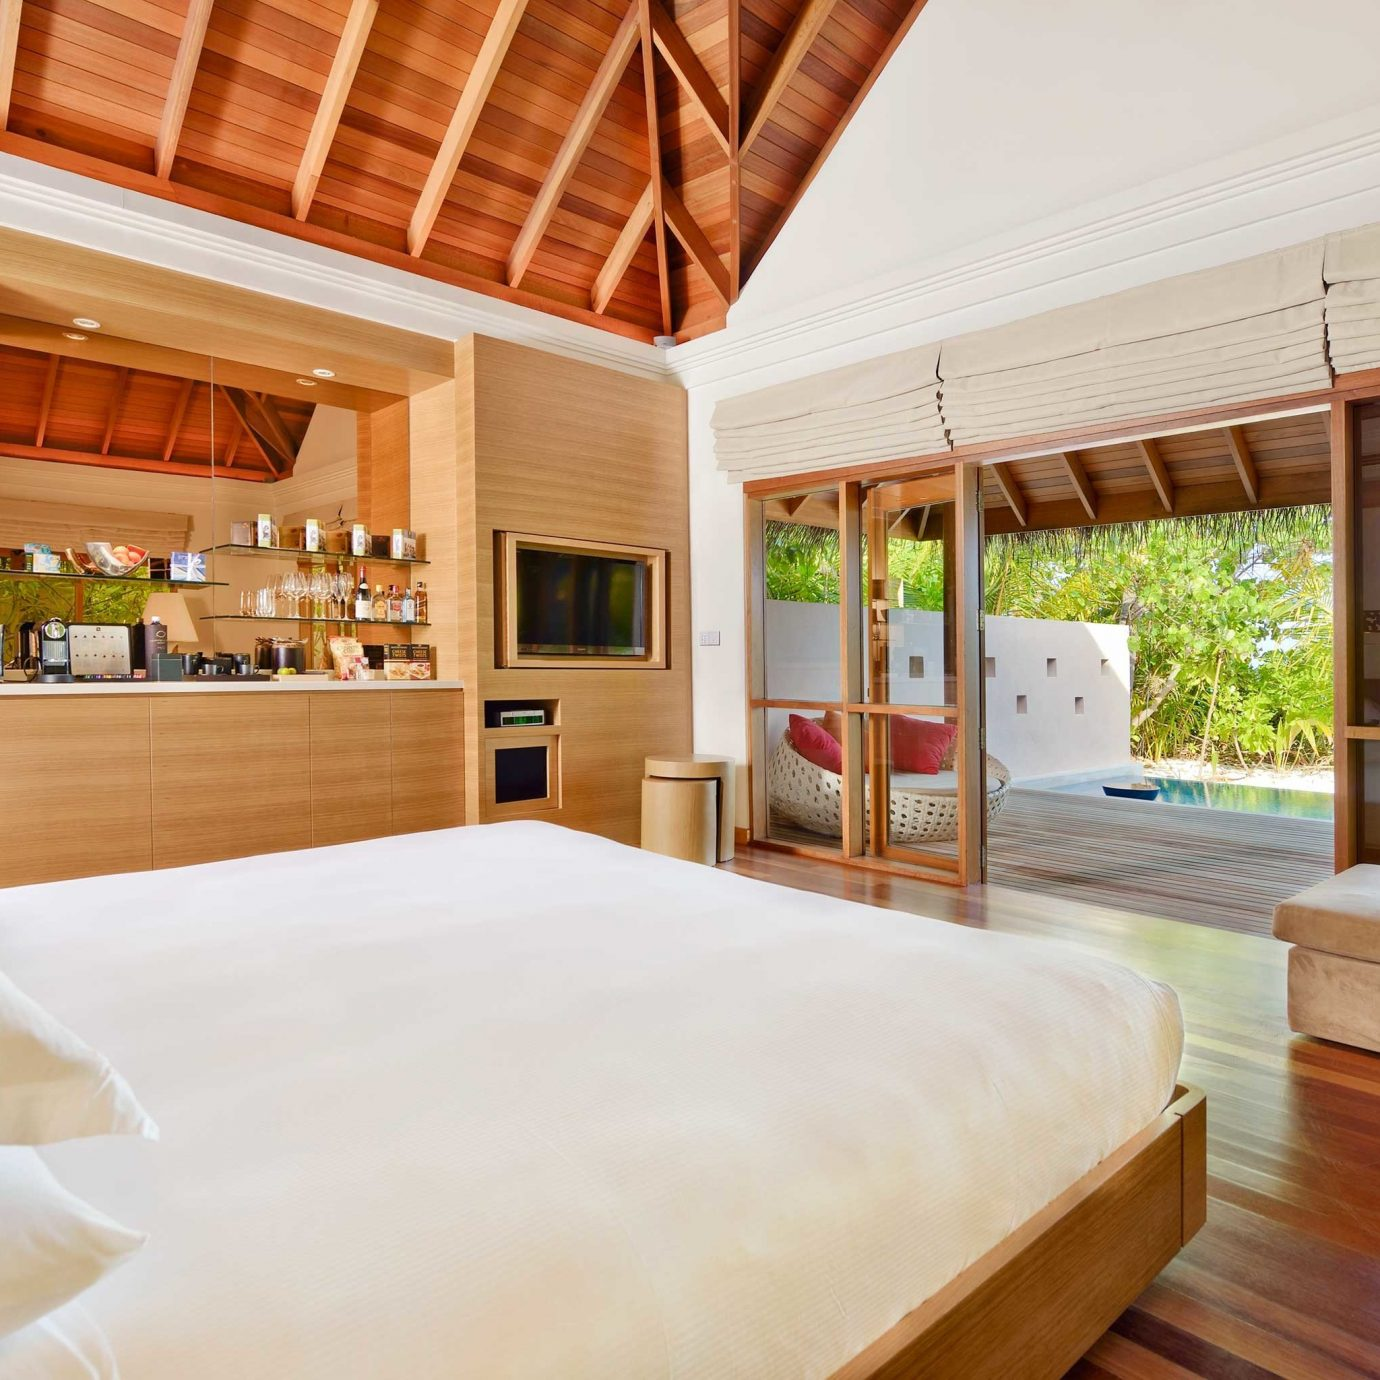 Bedroom Elegant Luxury Overwater Bungalow Scenic views Suite Villa property Resort home hardwood cottage